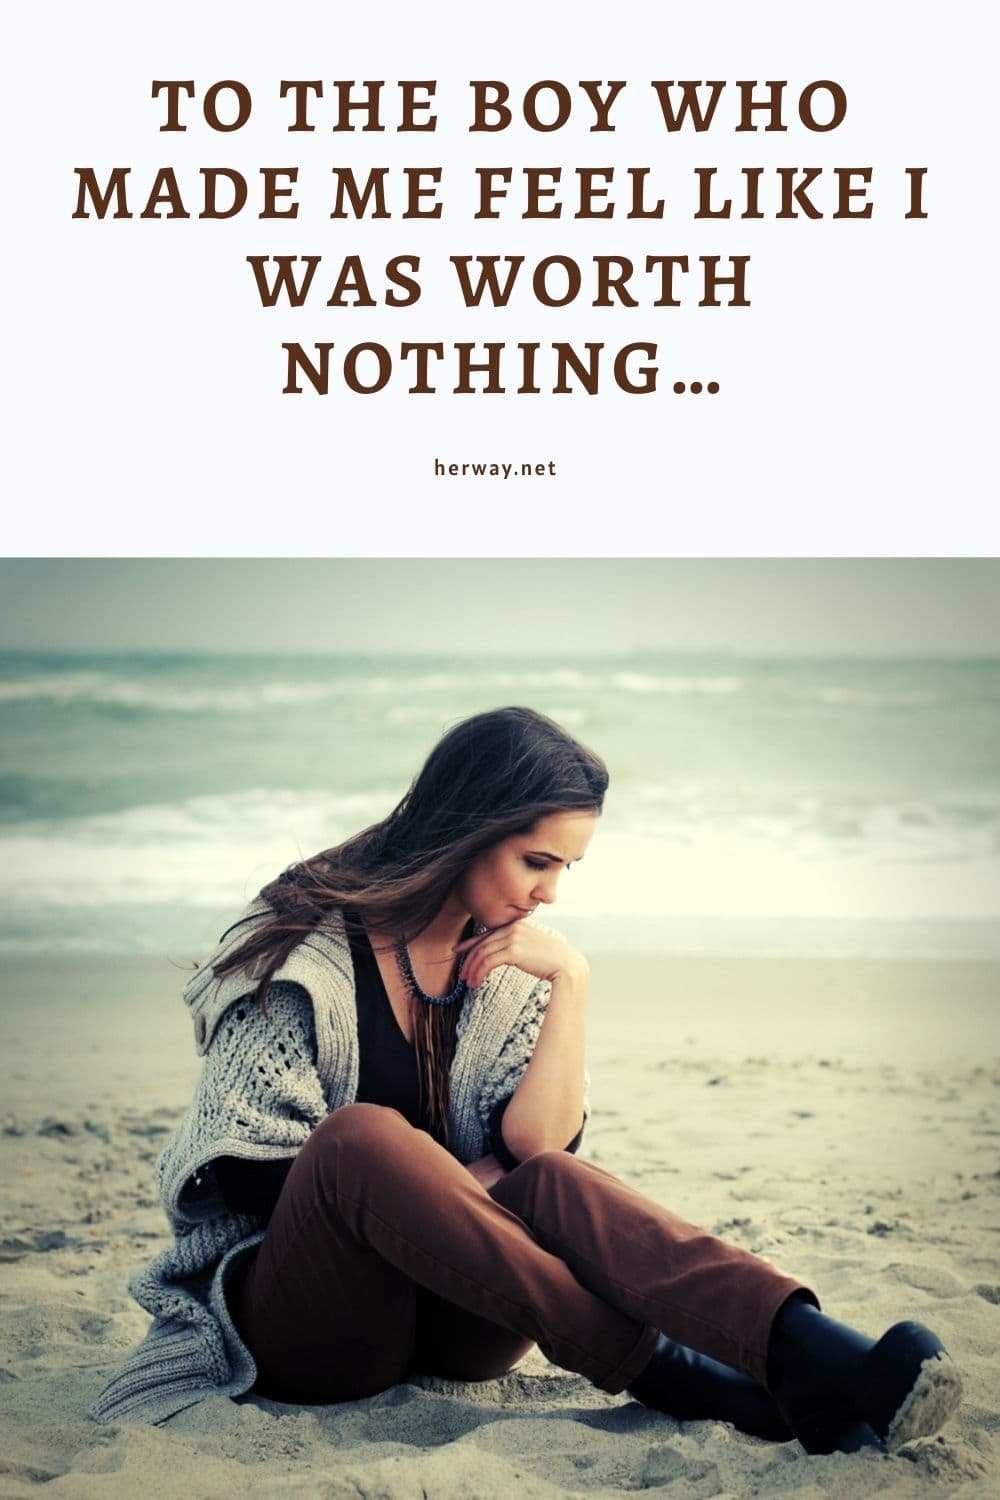 To The Boy Who Made Me Feel Like I Was Worth Nothing…